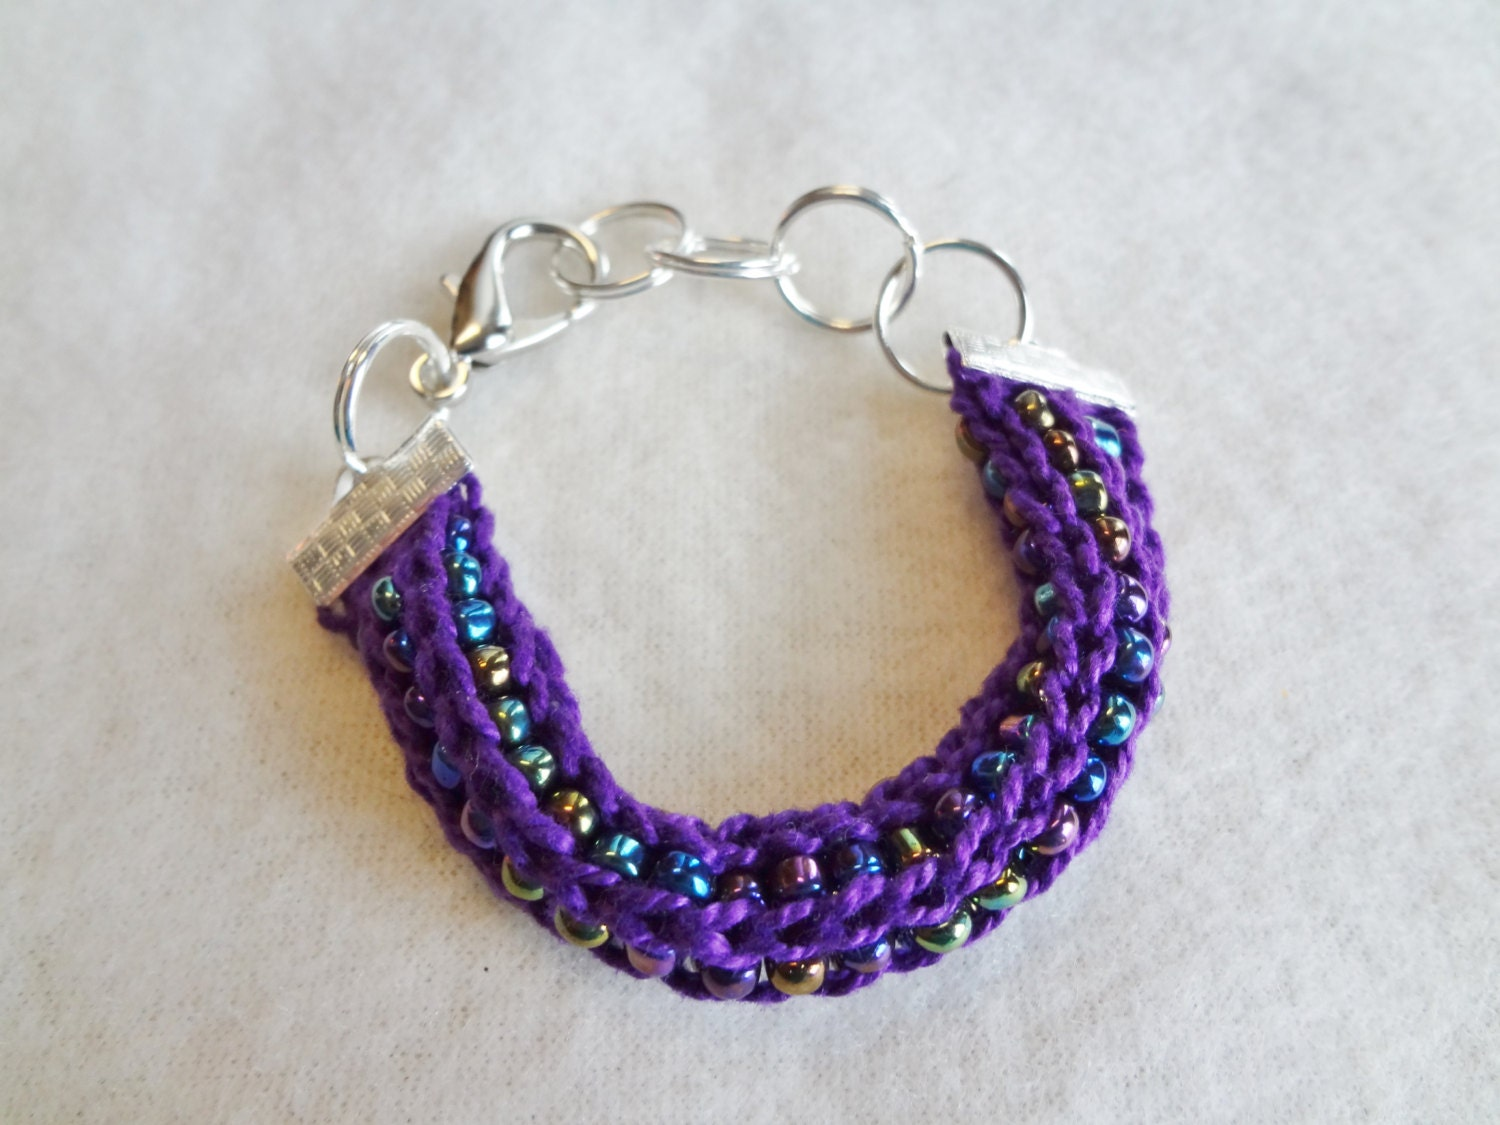 French Knitting With Beads : French knit beaded bracelet purple with by spindlecityknits